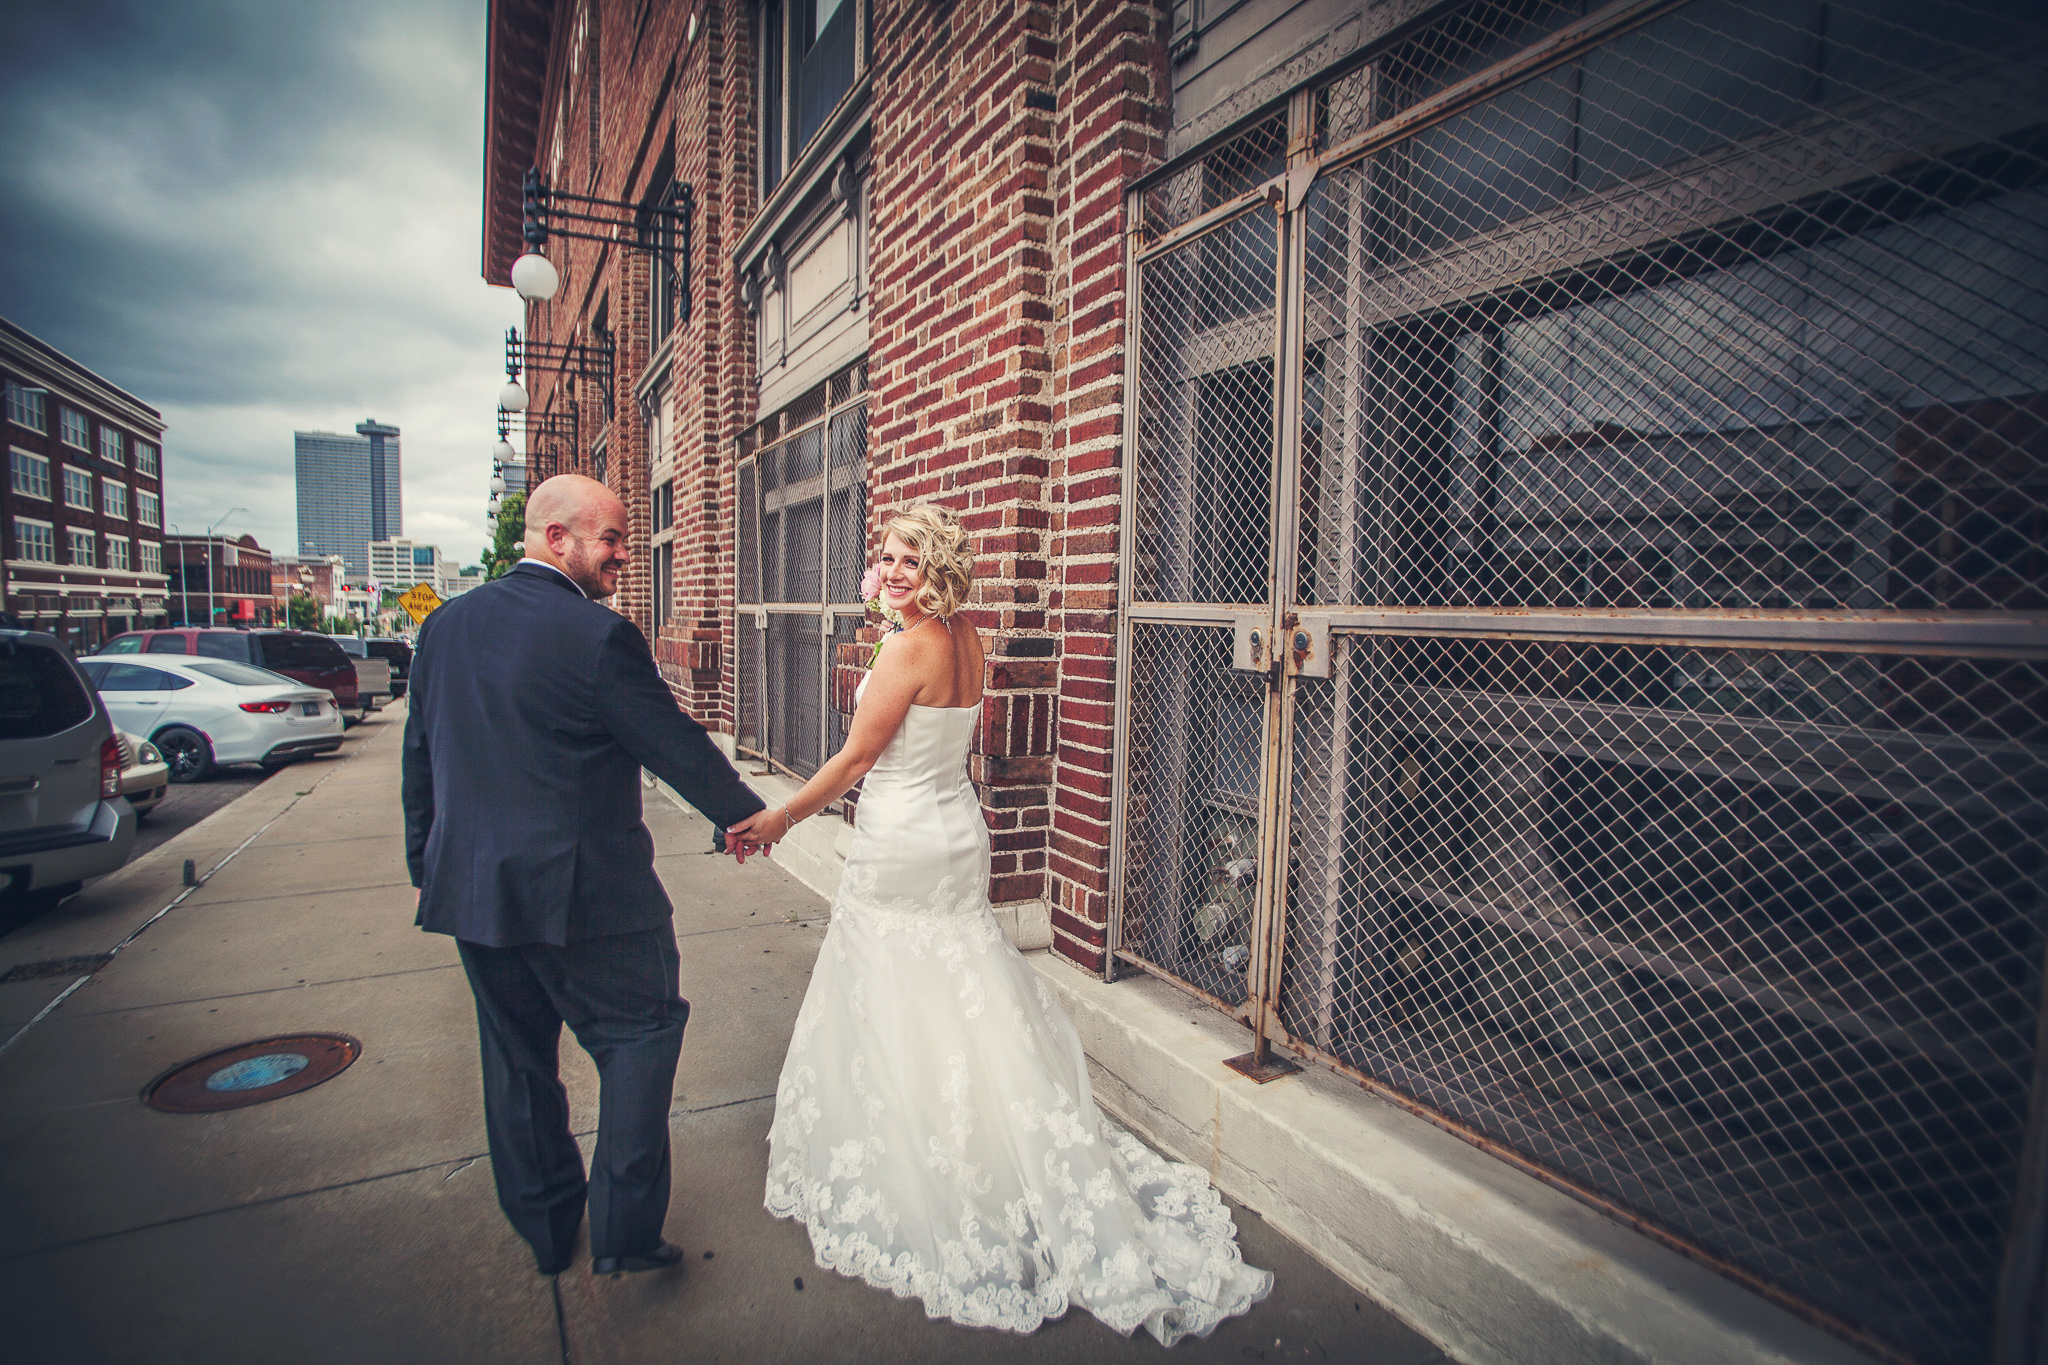 Kansas_City_Small_Wedding_Venue_Melanie&David_135b.jpg